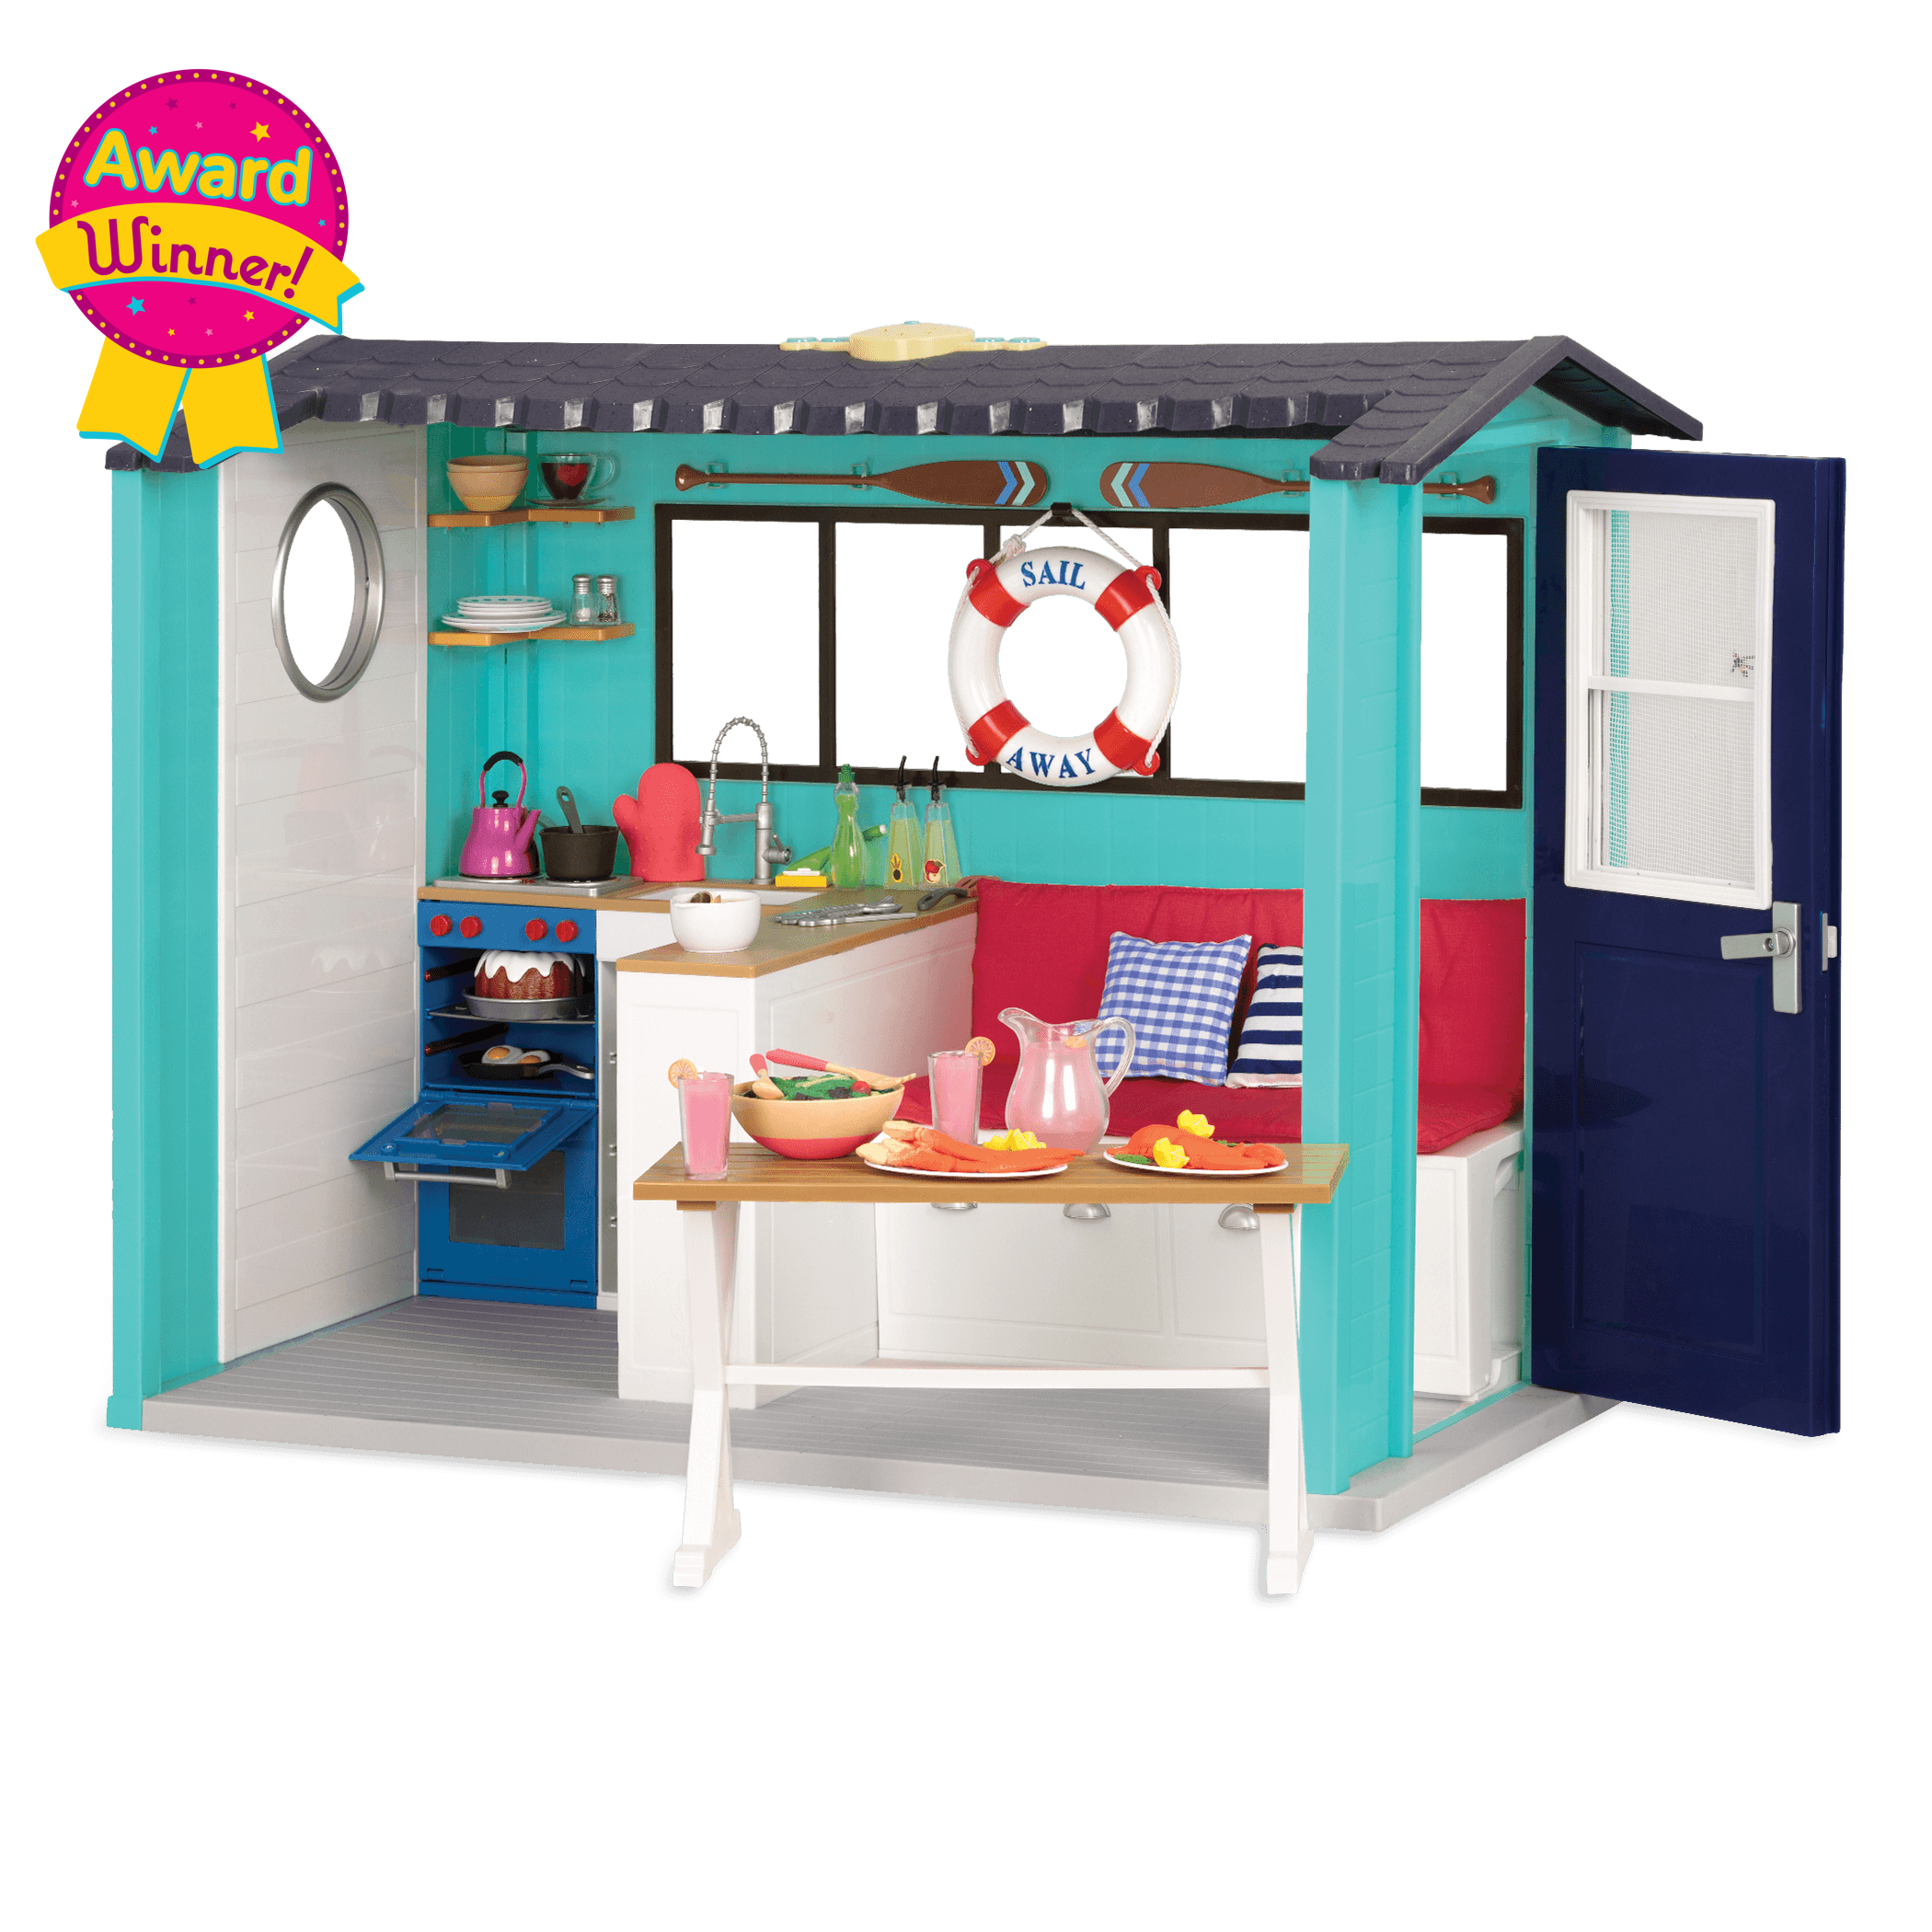 Seaside Beach House Playset for 18-inch Dolls -  Award Winner!